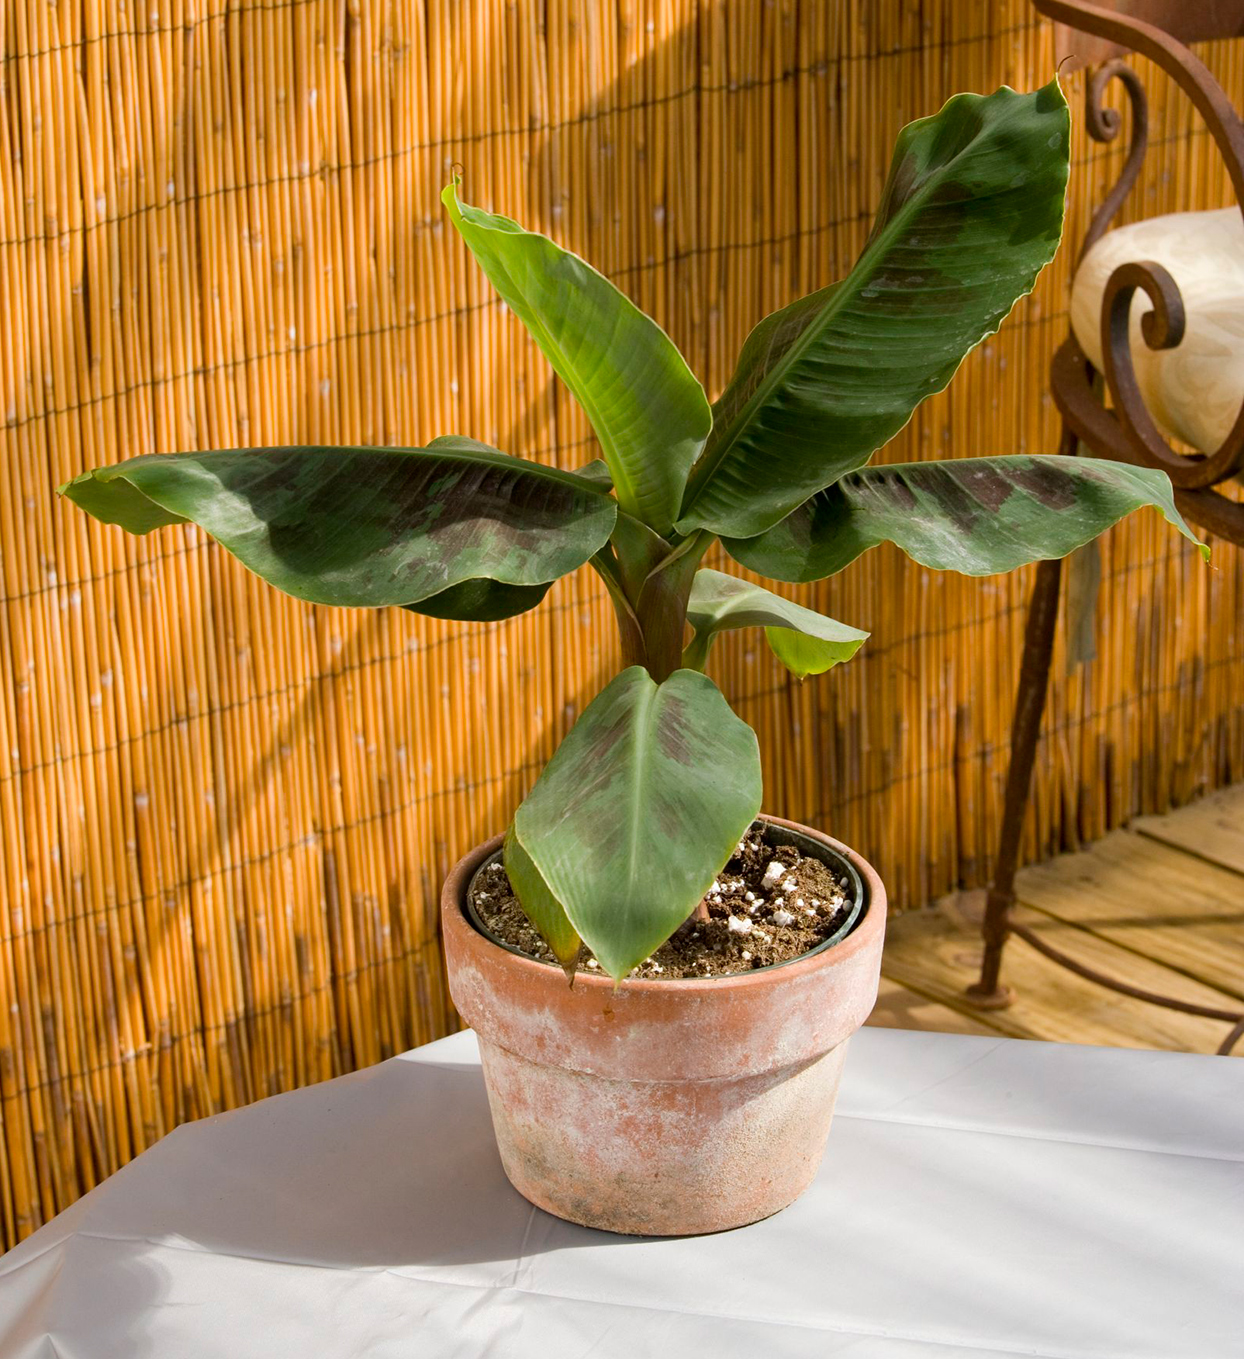 potted banana plant sitting on table